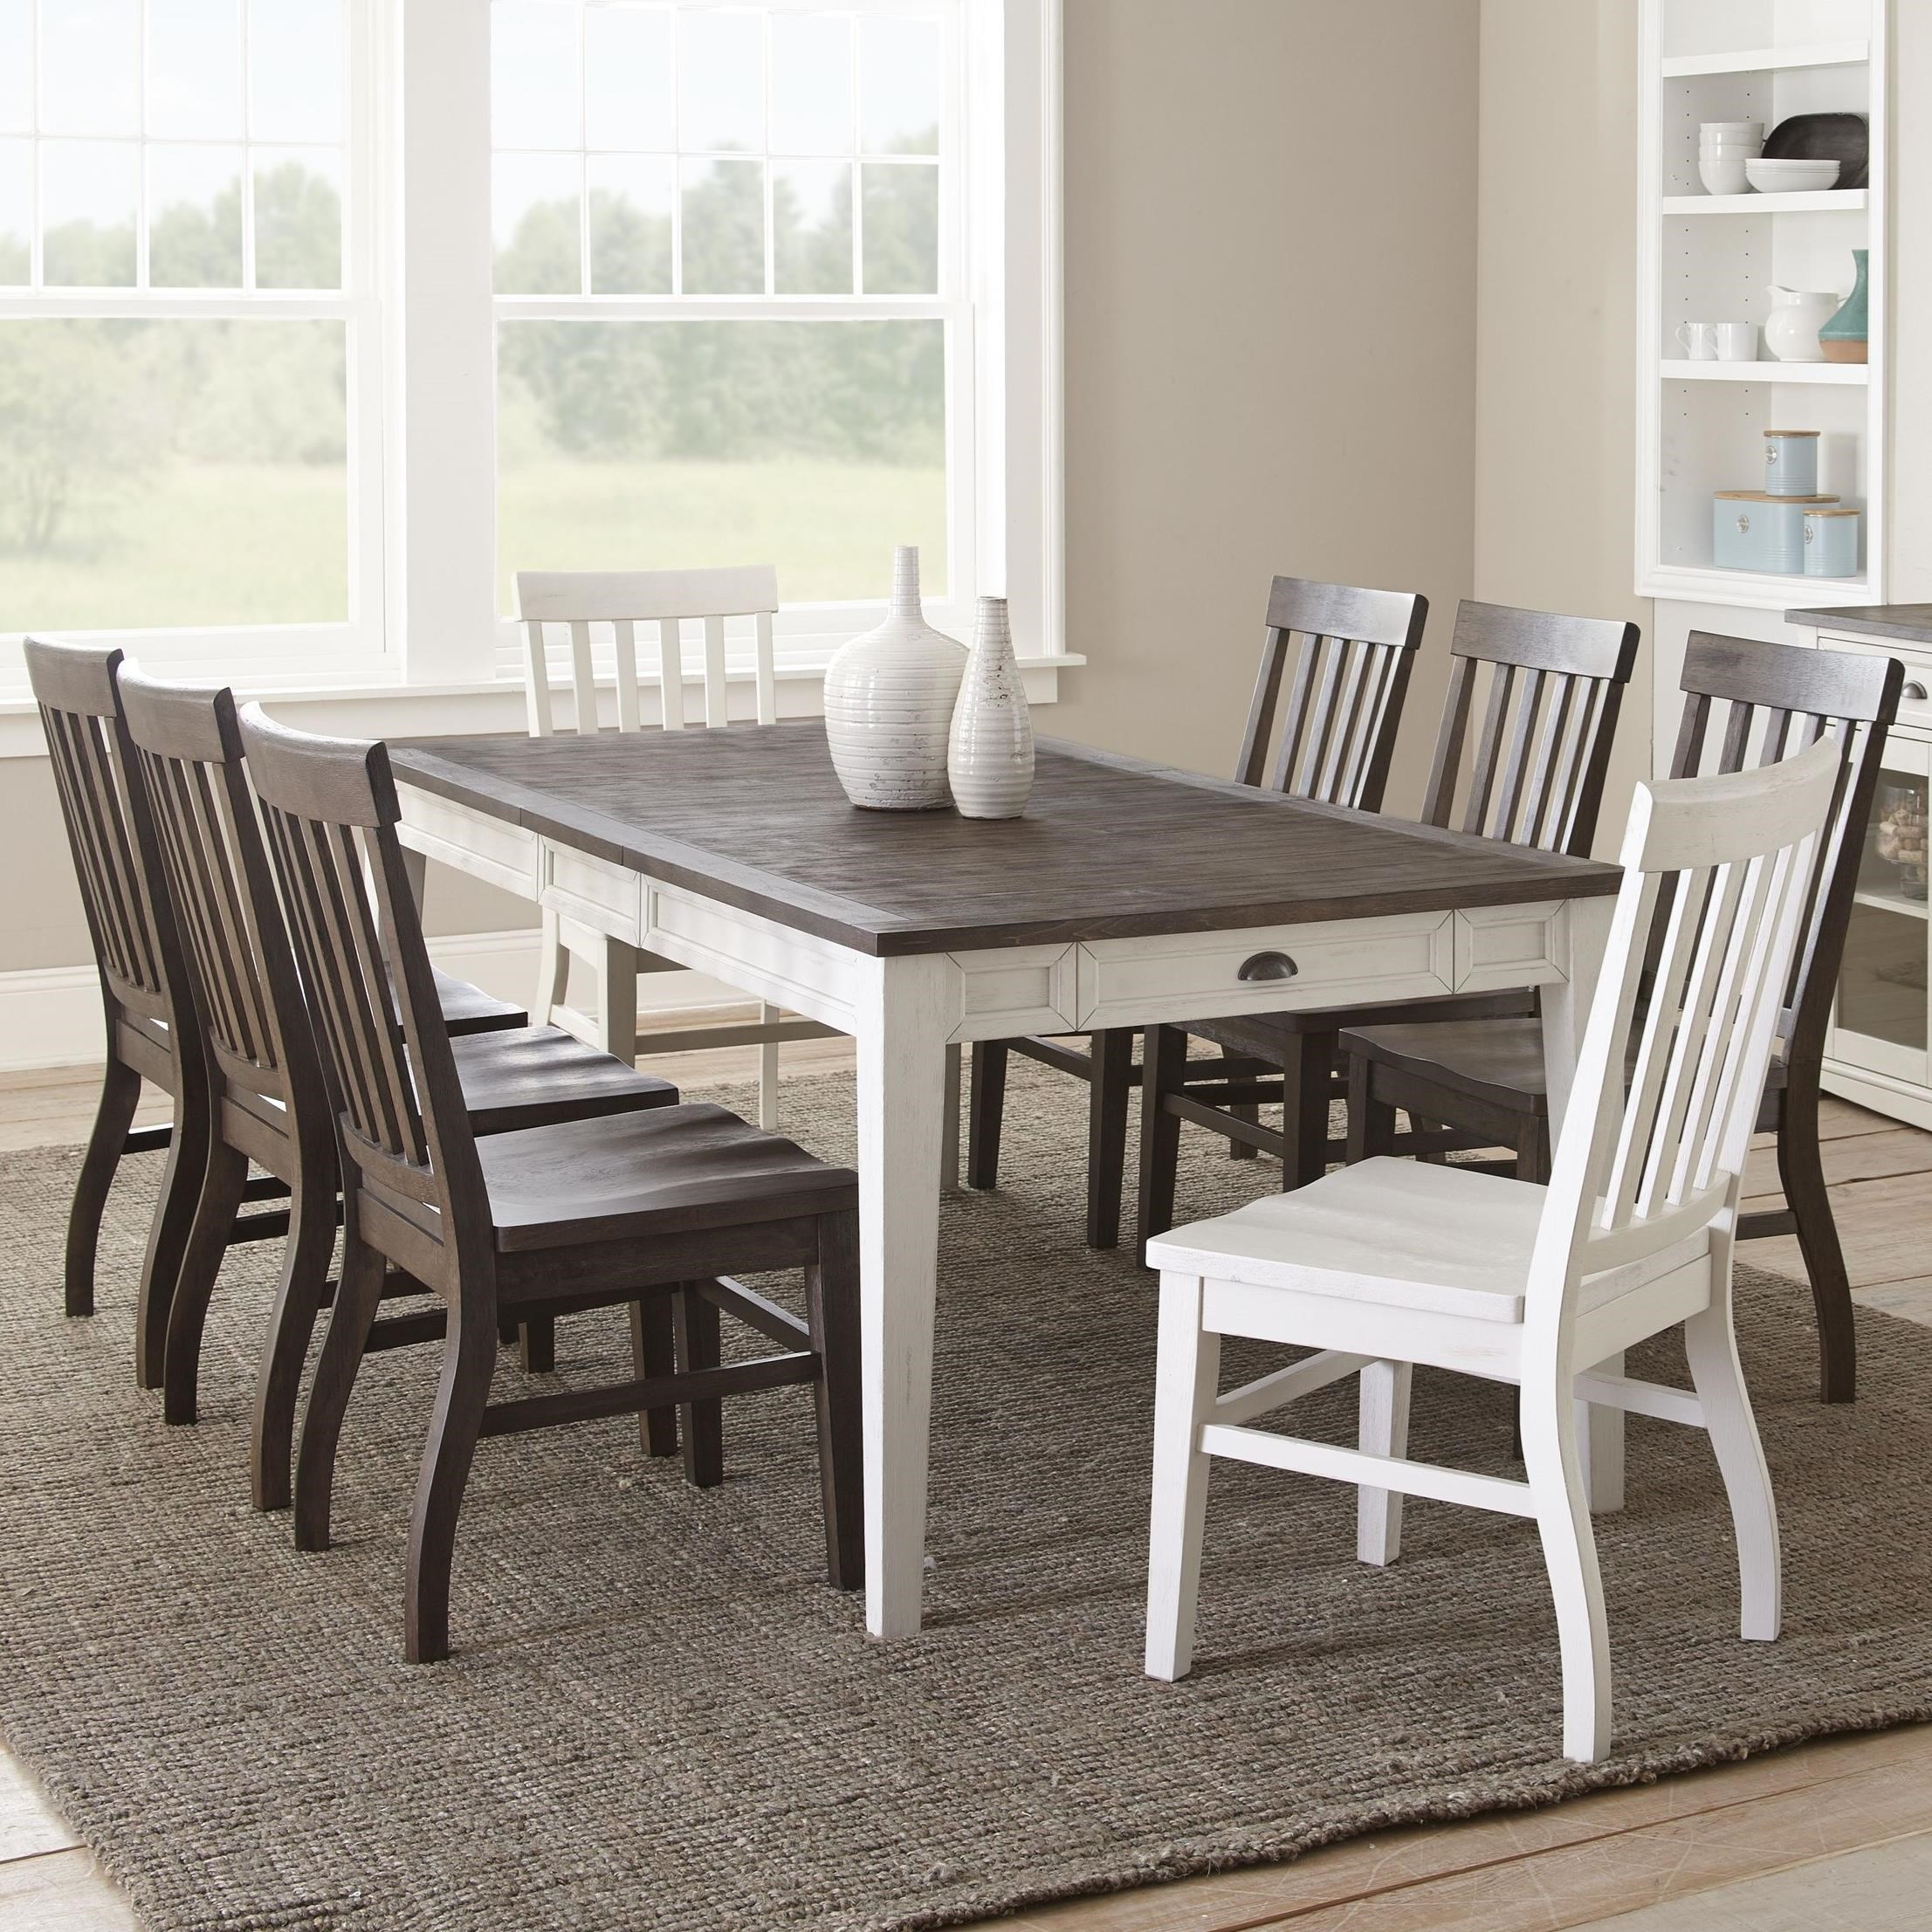 Steve Silver Cayla 9 Piece Two Tone Table And Chair Set Wayside Furniture Dining 7 Or More Piece Sets